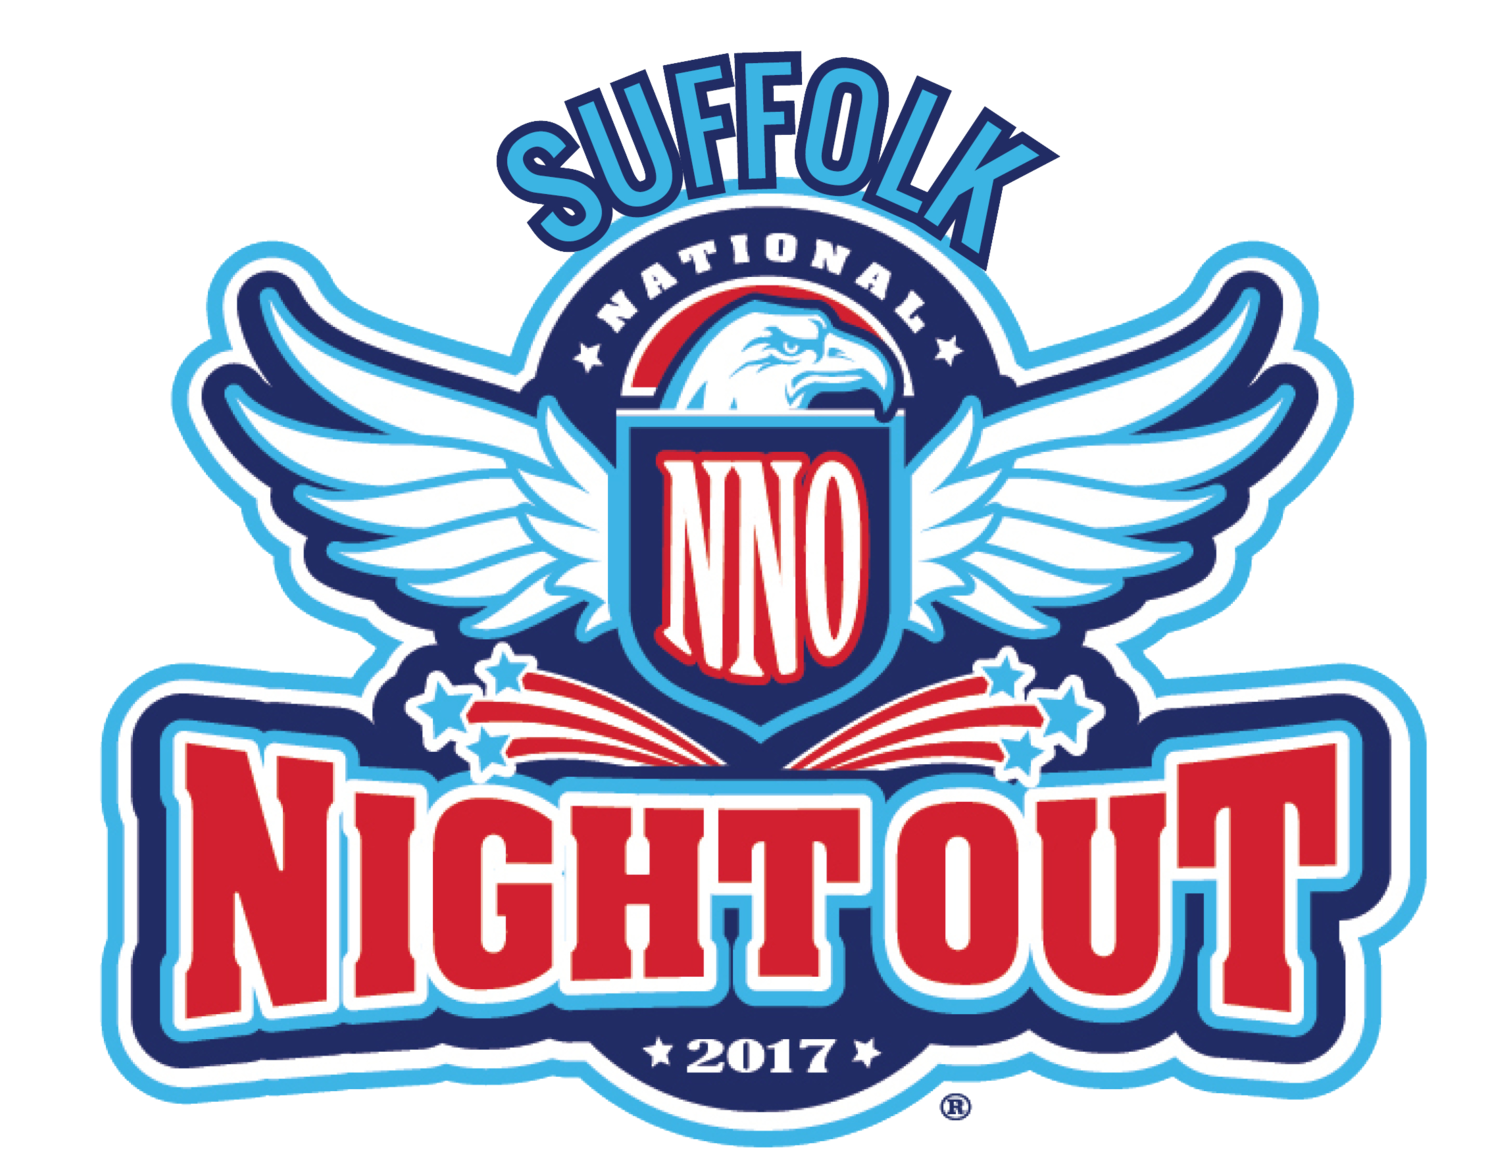 Suffolk NNO